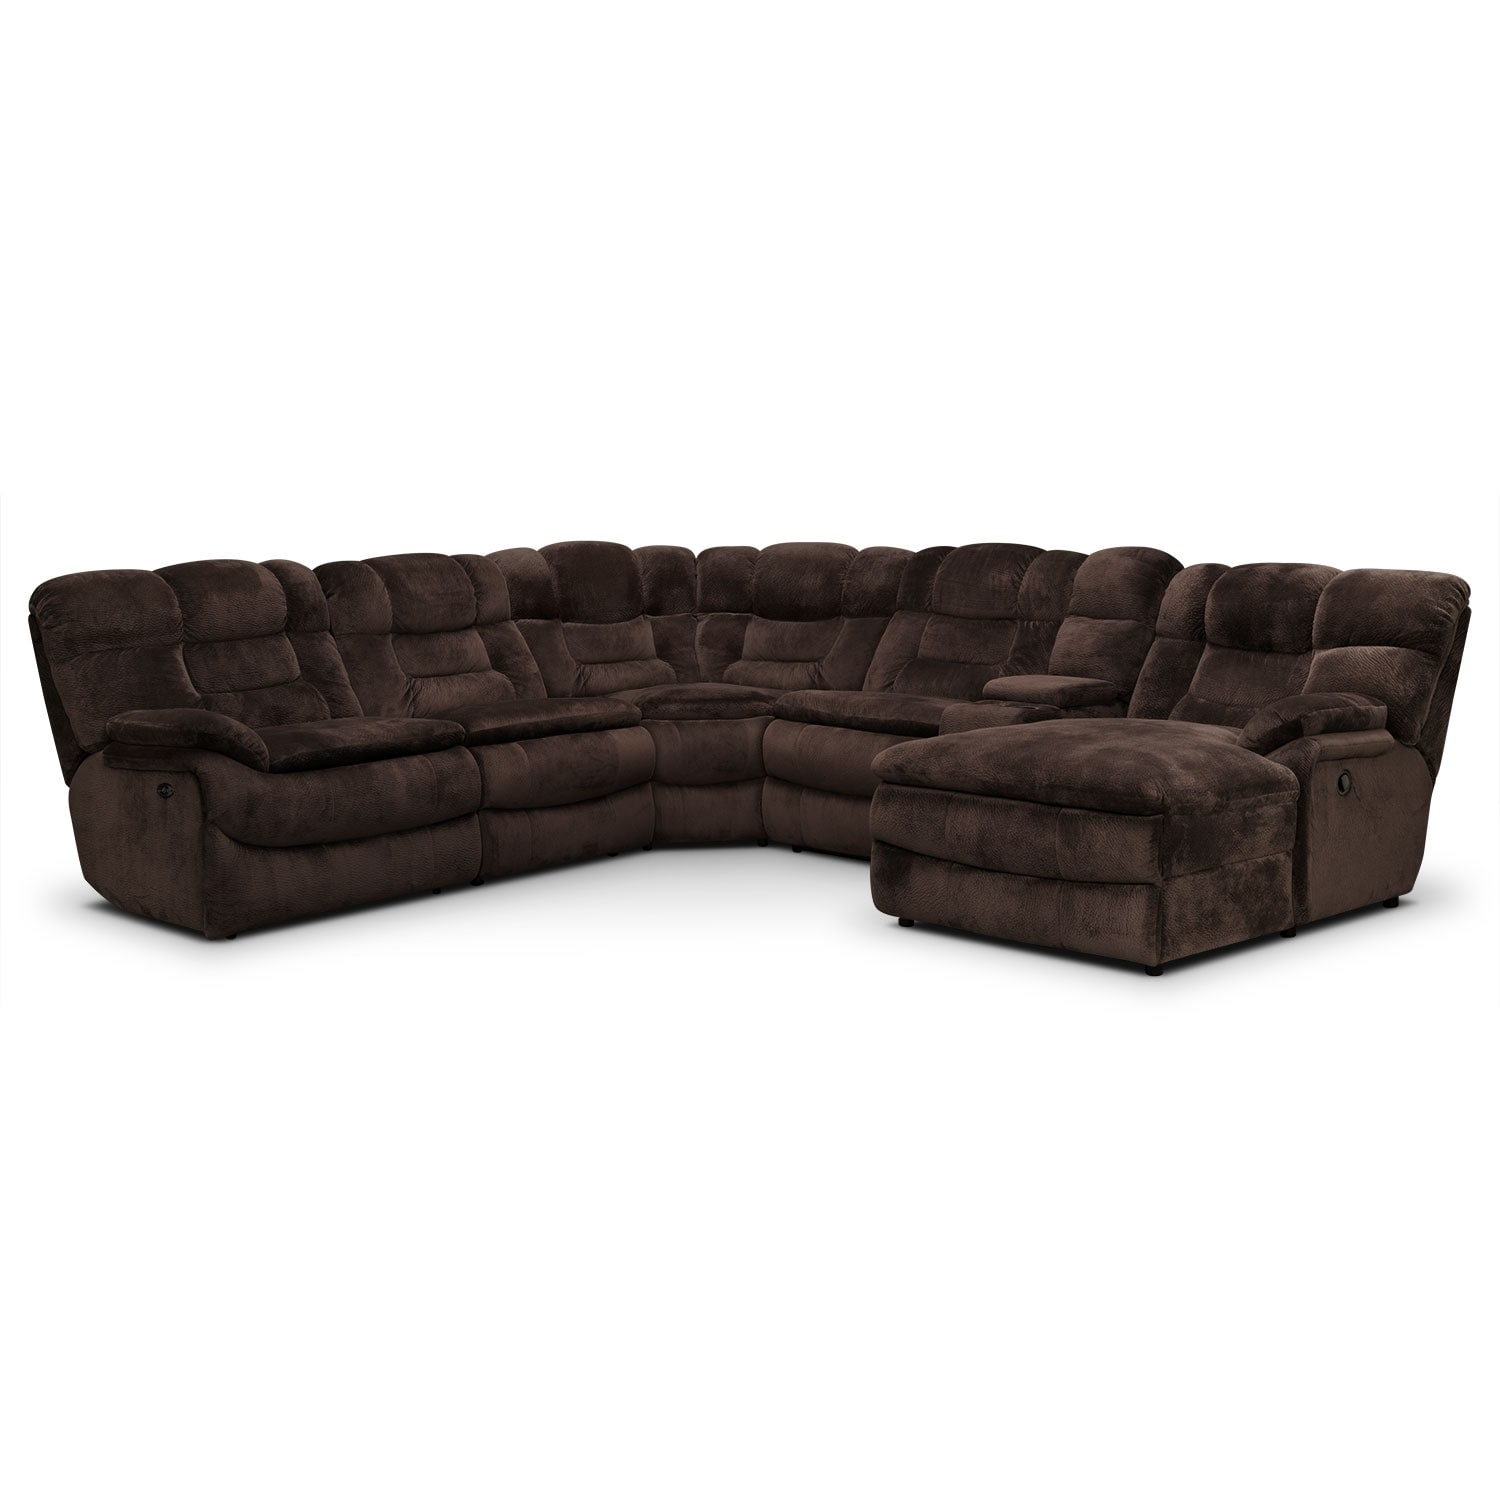 Living Room Furniture   Big Softie 6 Piece Power Reclining Sectional With  Chaise